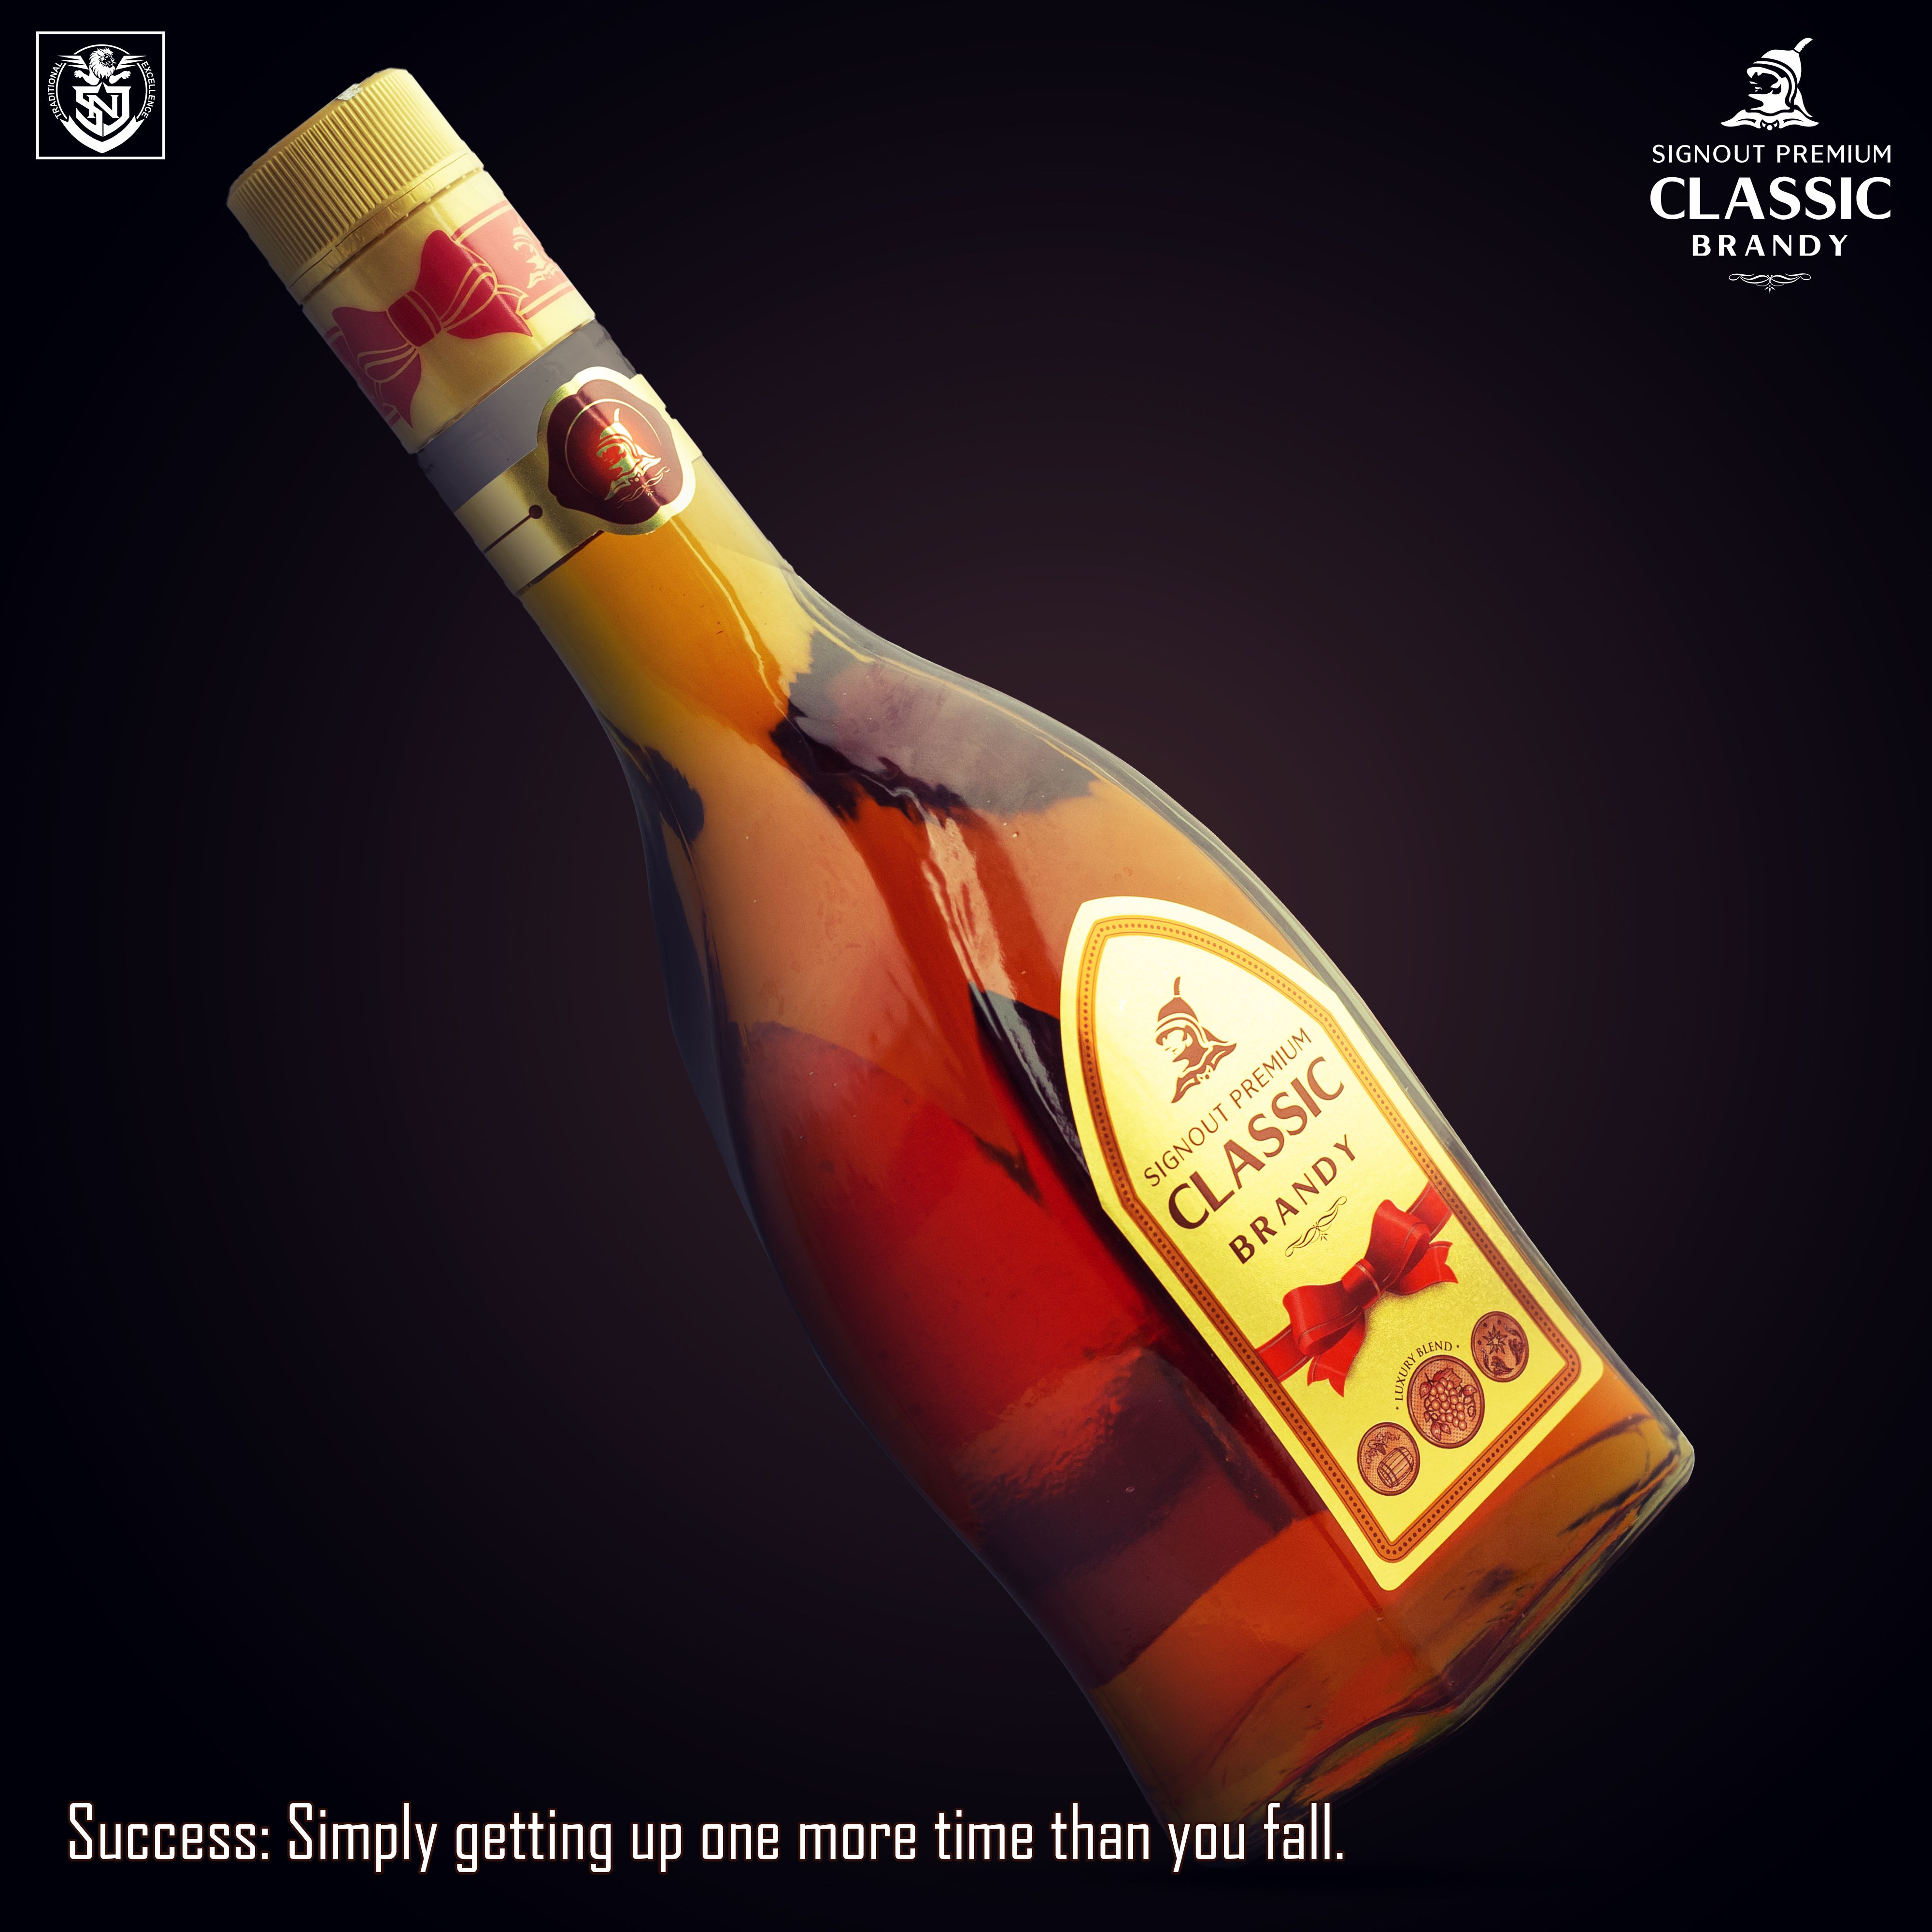 Success Simply Getting Up One More Time Than You Fall Signoutclassic Premiumbrandy Snj Signoutclassicbrandy Brandy Rose Wine Bottle Brandy Wine Bottle